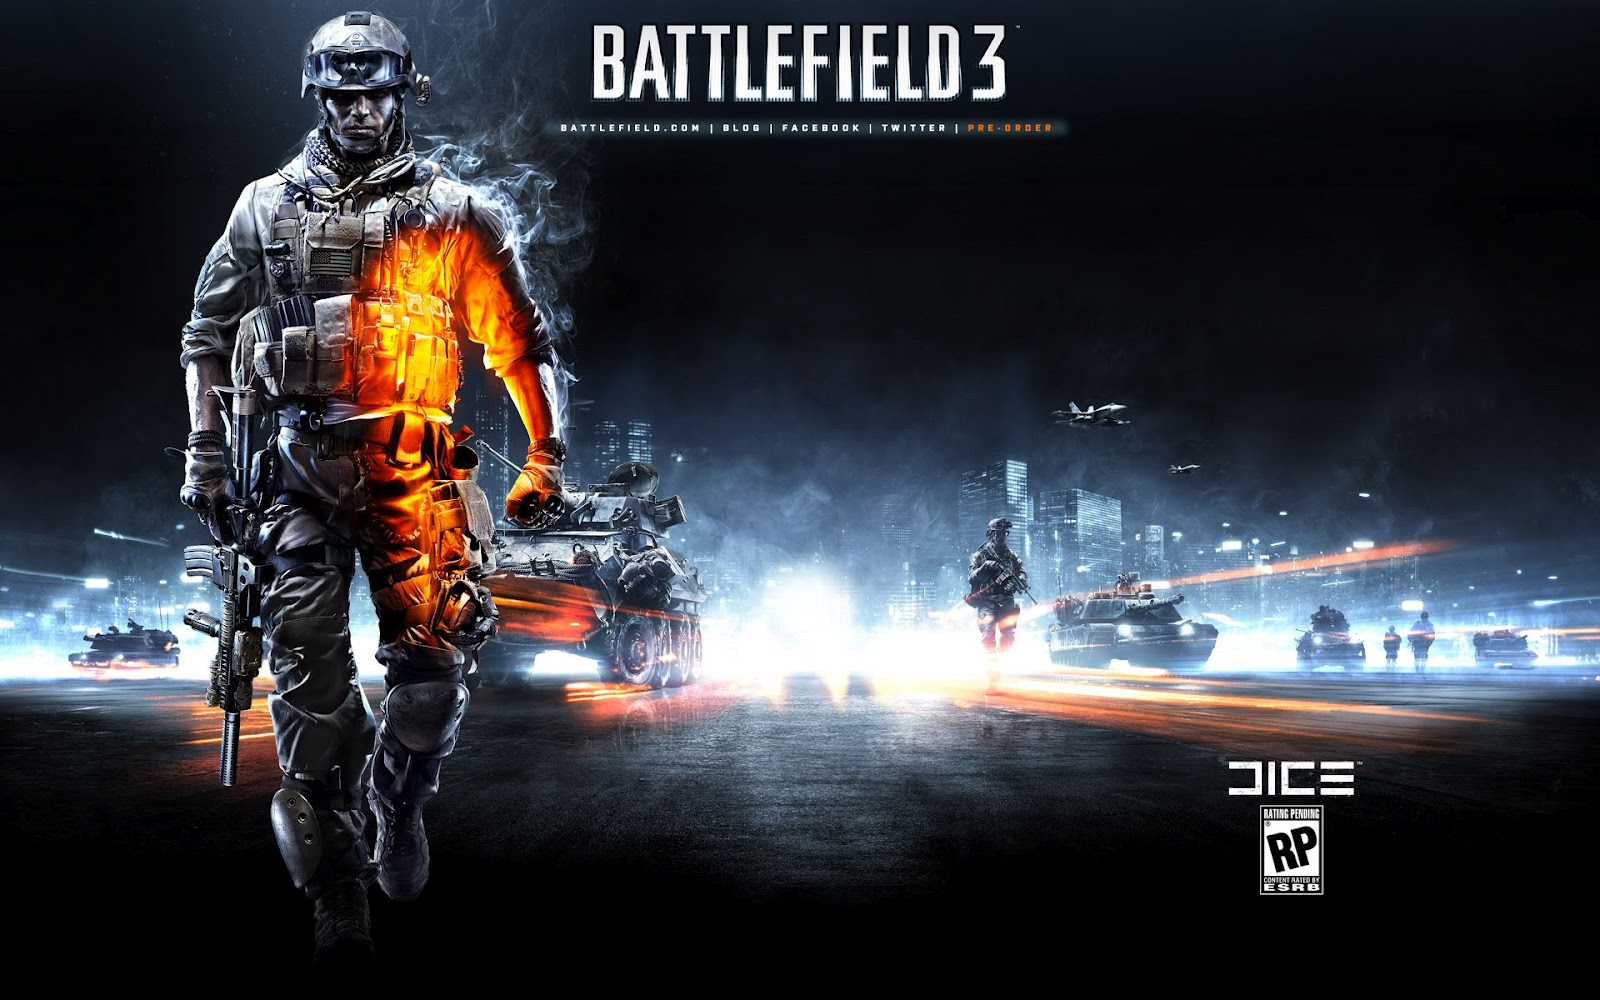 Battlefield 3 - Download